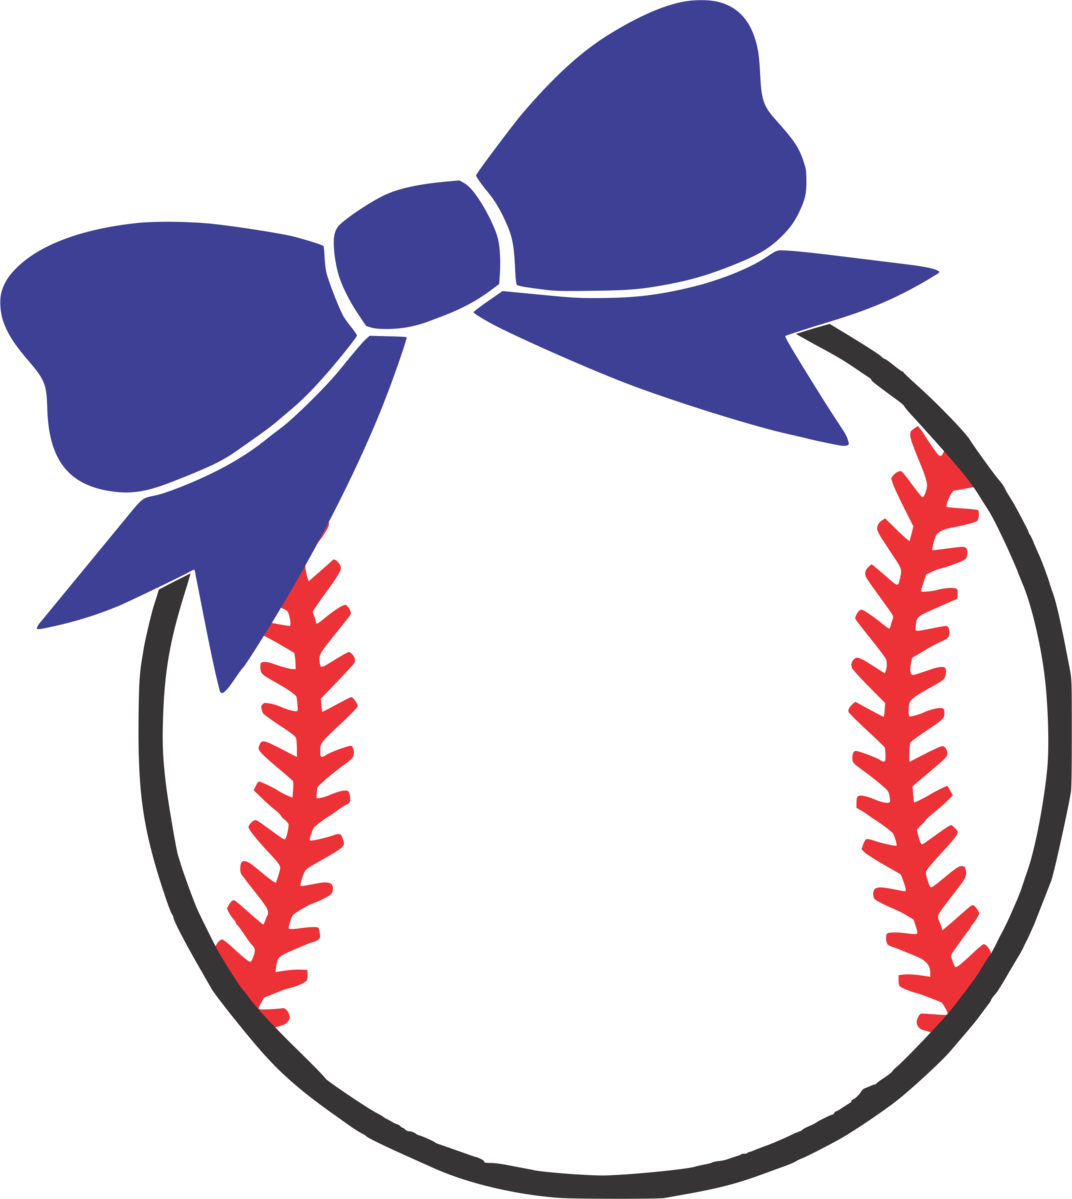 With bow . Bows clipart baseball